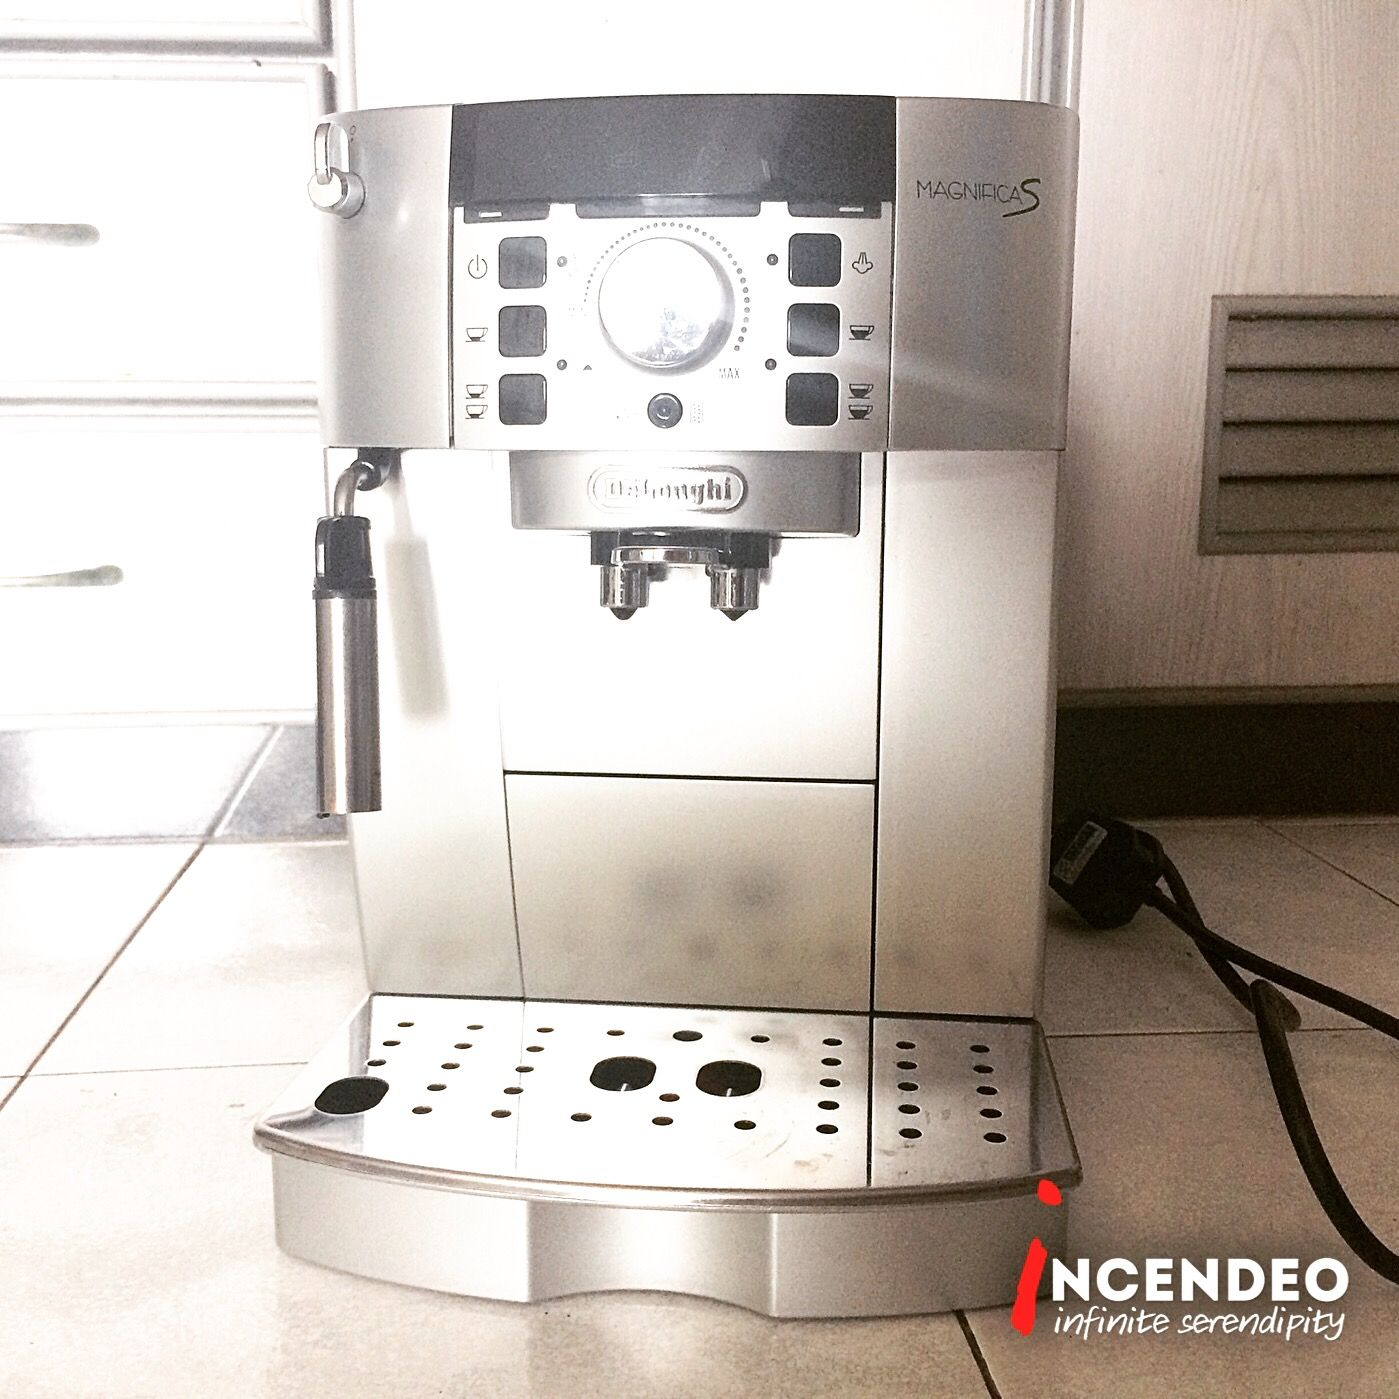 Delonghi Magnifica S Fully Automatic Coffee Machines Ecam 22 110 Sb Delonghi Magnifica Coffee Machines Incendeo Automatic Coffee Machine Delonghi Coffee